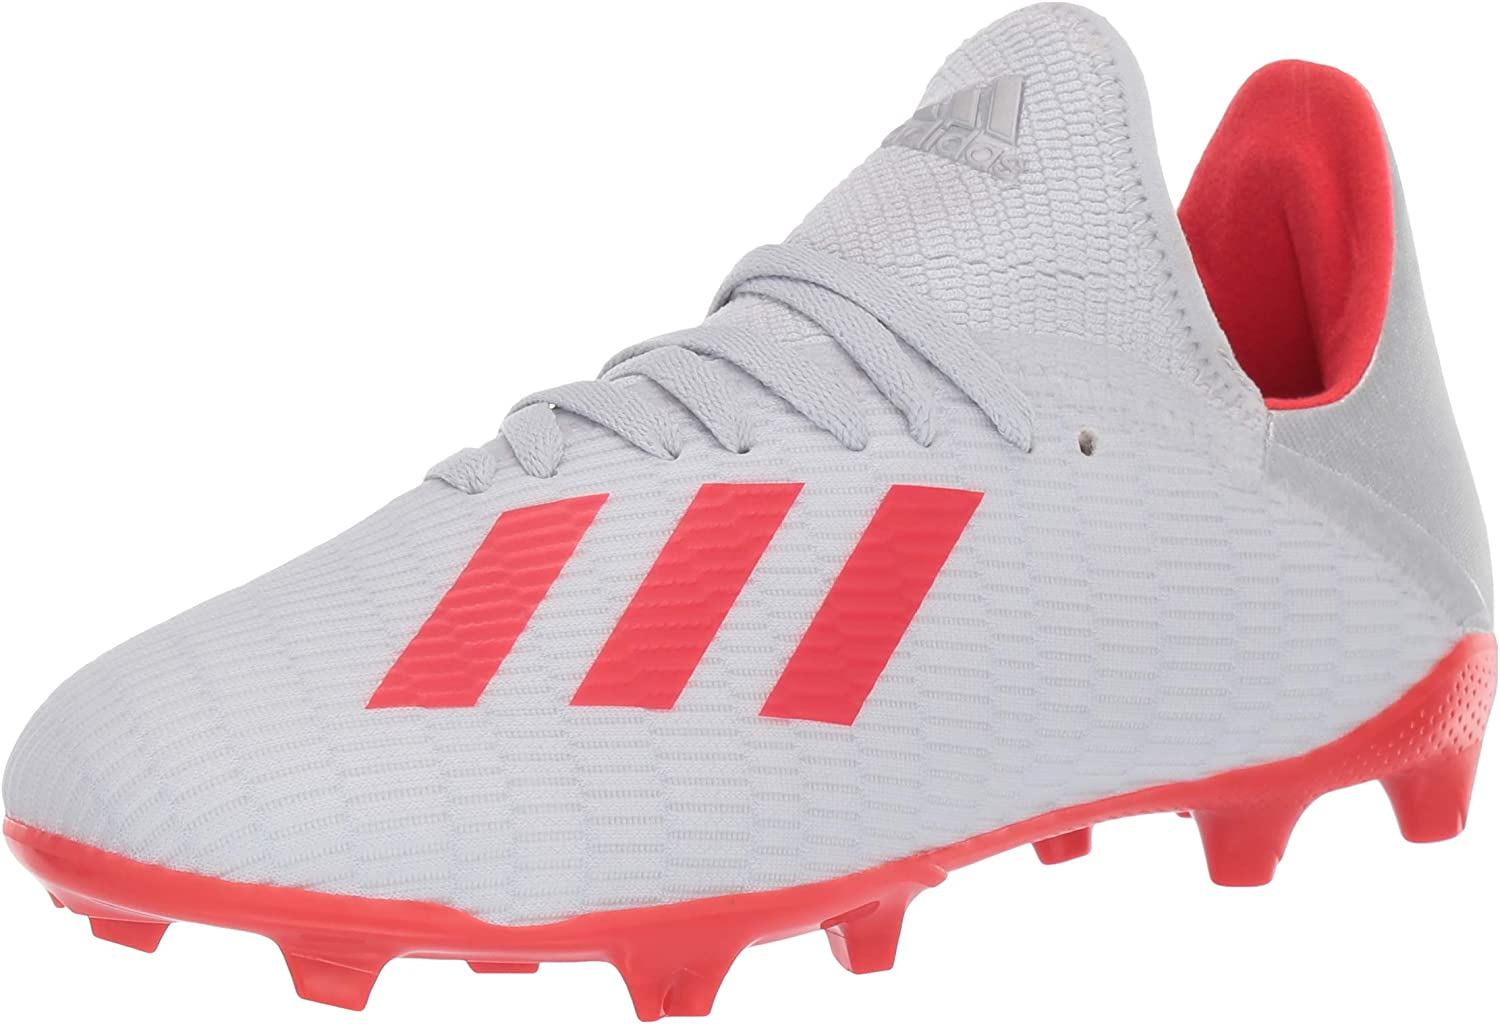 Adidas Kids' X 19.3 Firm Ground Soccer shoes